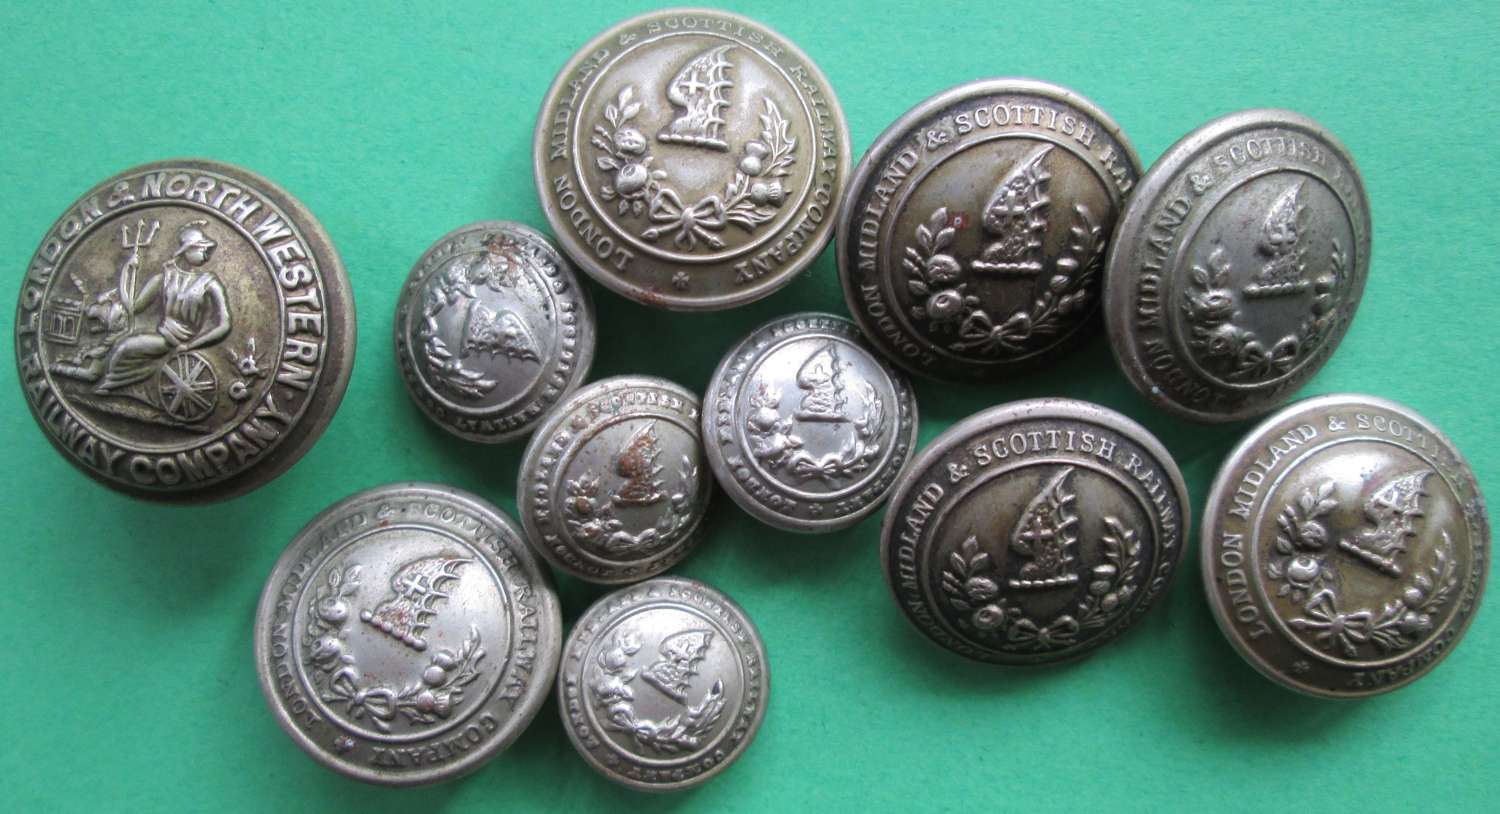 A NICE SELECTION OF RAILWAY BUTTONS